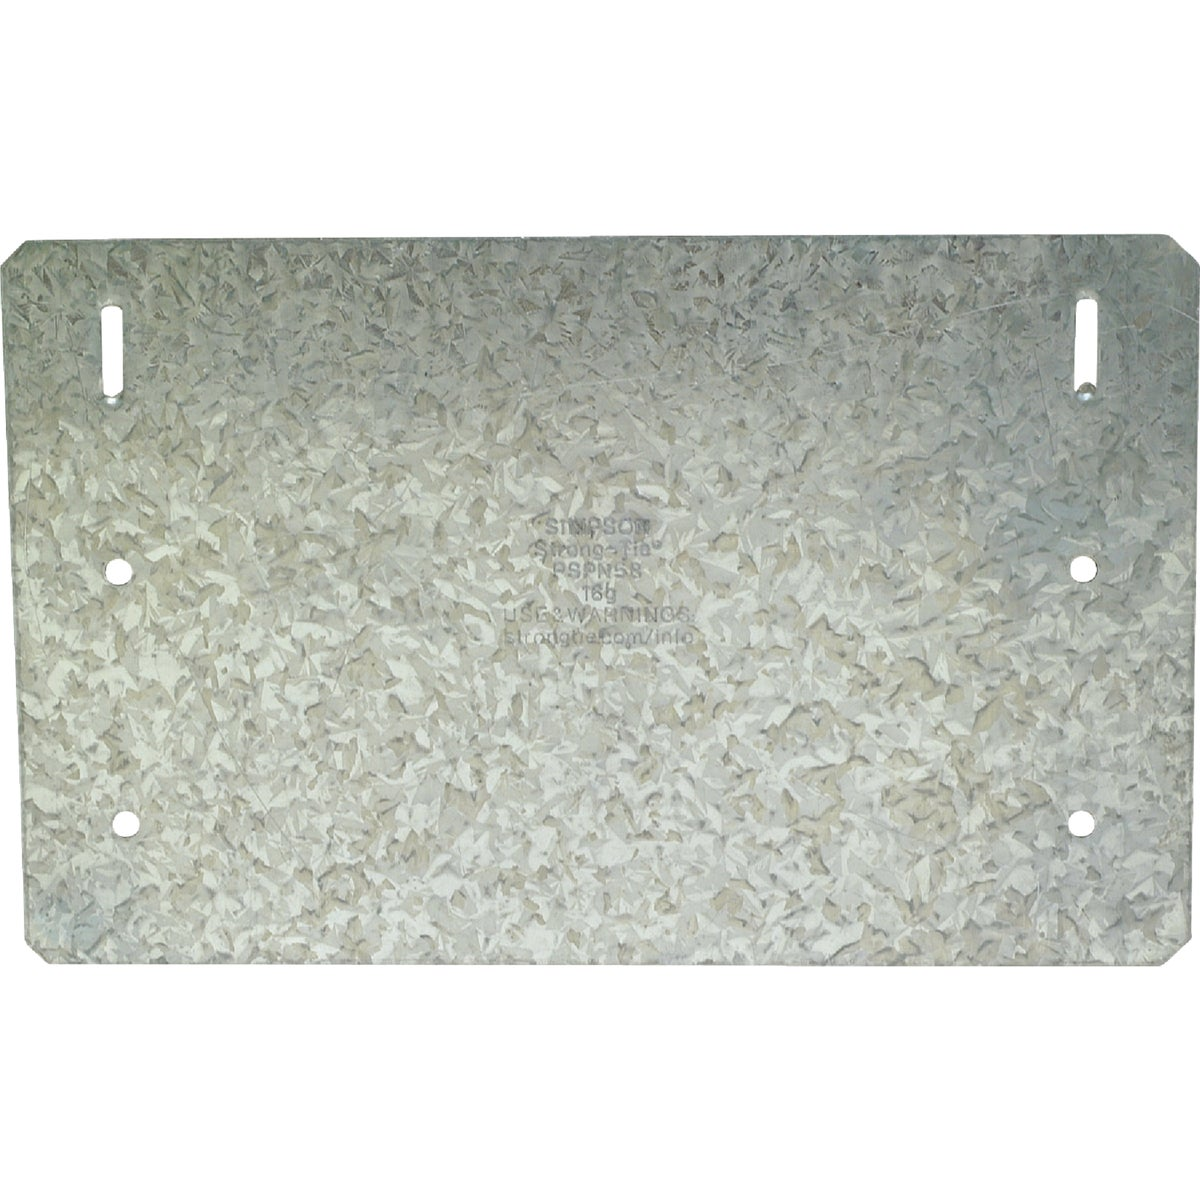 Simpson Strong-Tie 5X8 PROTECTIVE PLATE PSPN58